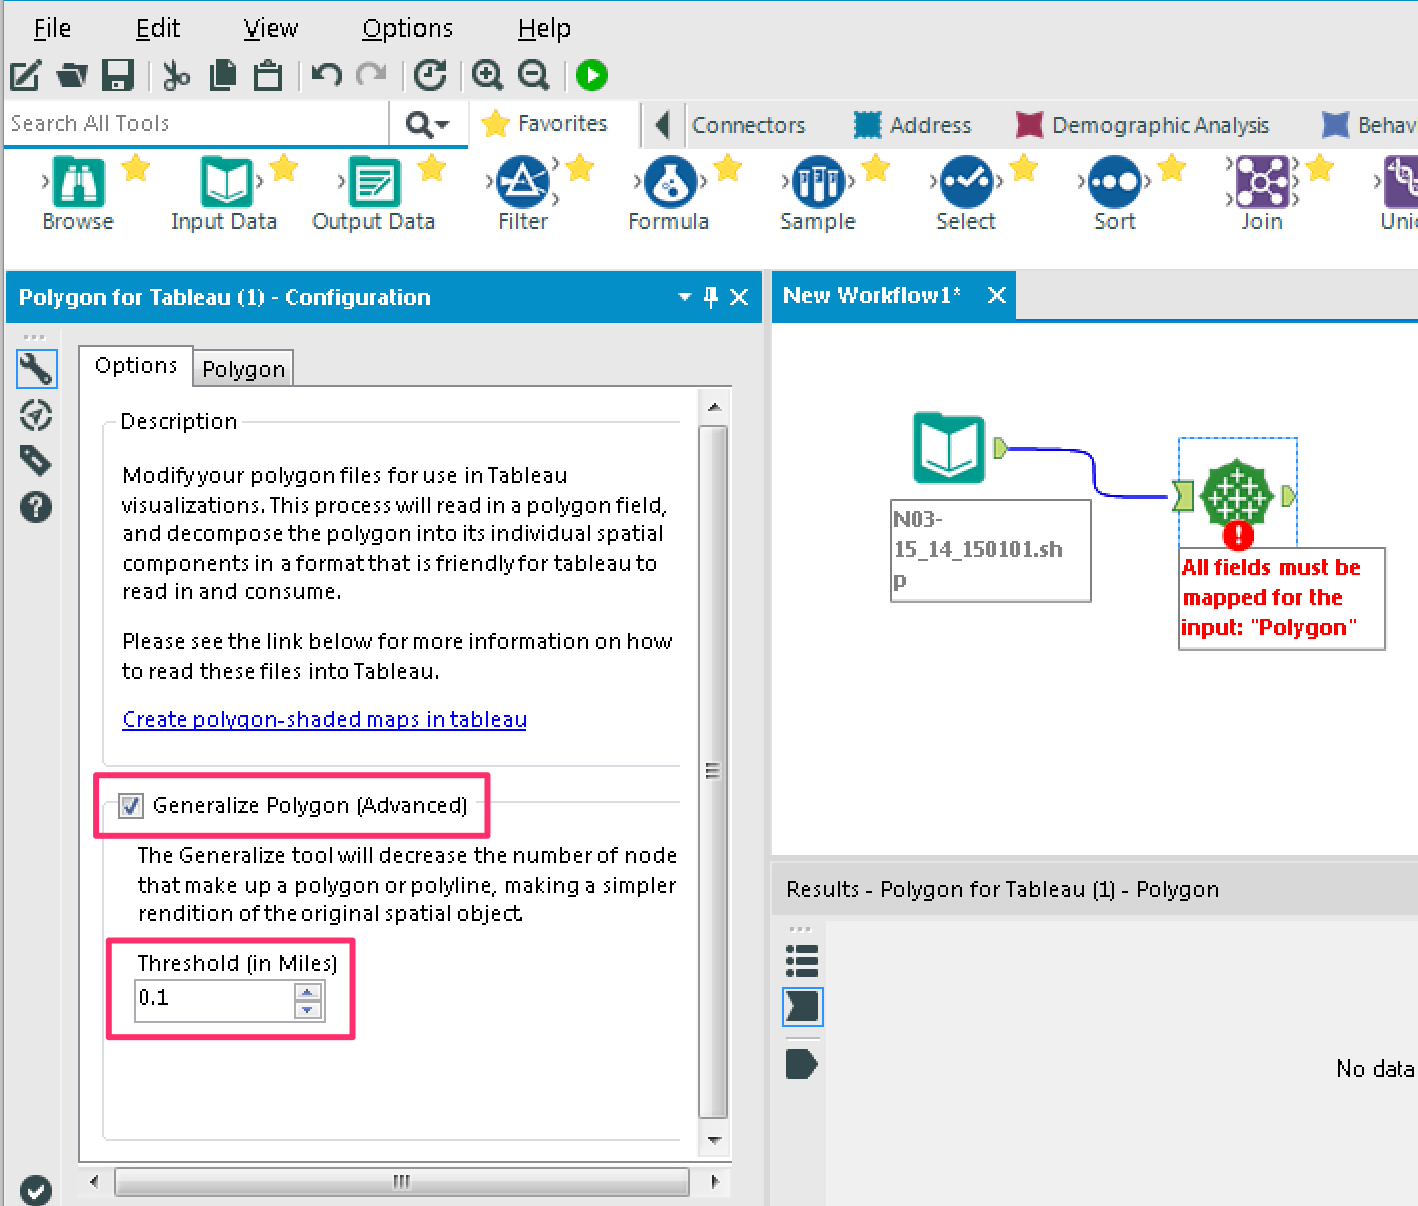 alteryx-workflow-polygon-for-tableau_05